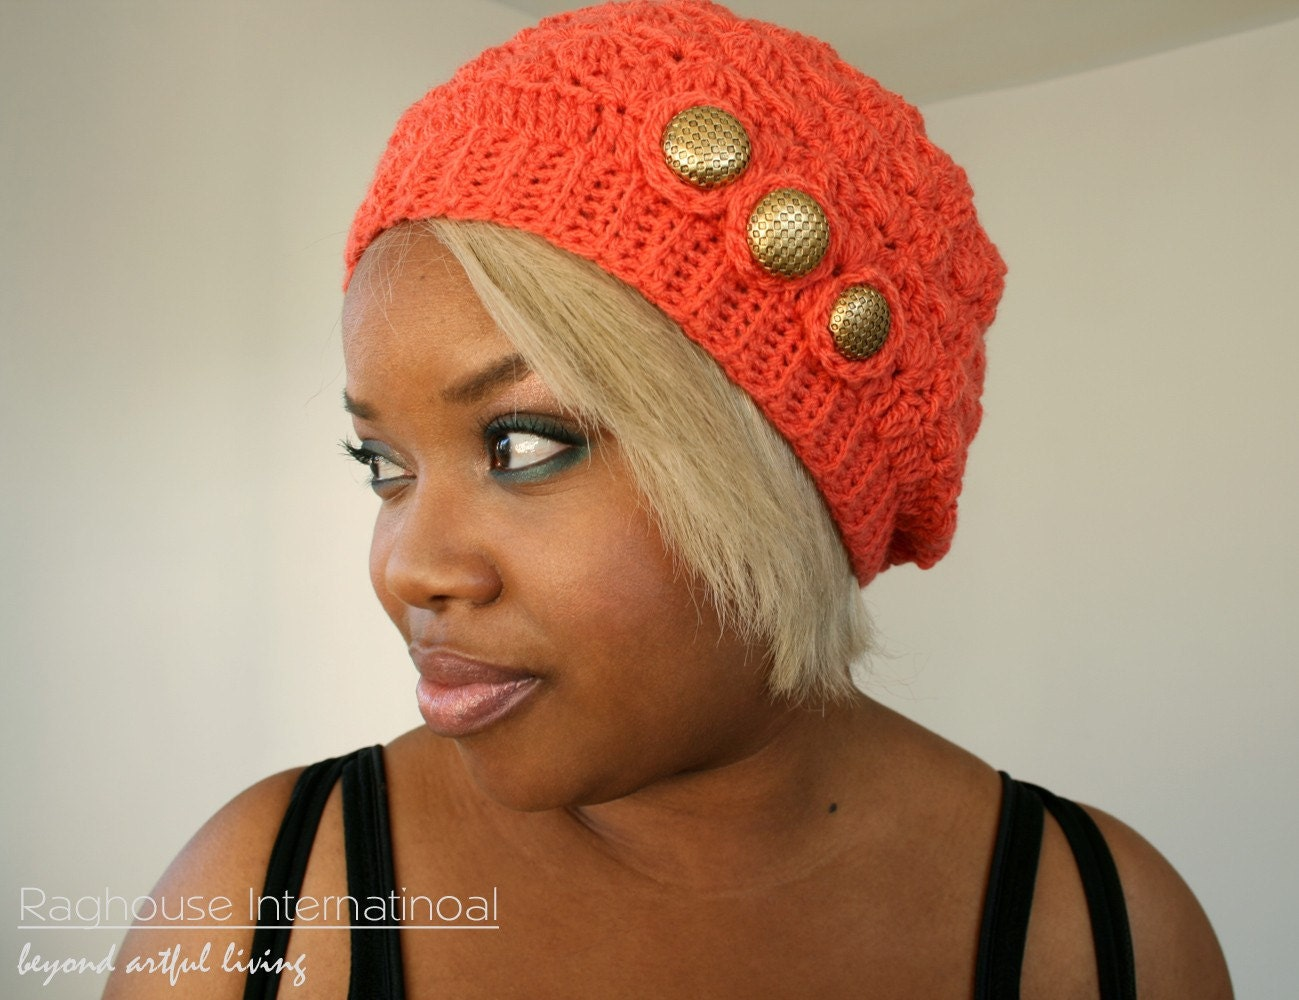 SALE Handmade Crochet Beret Coral Rose by raghousenternational